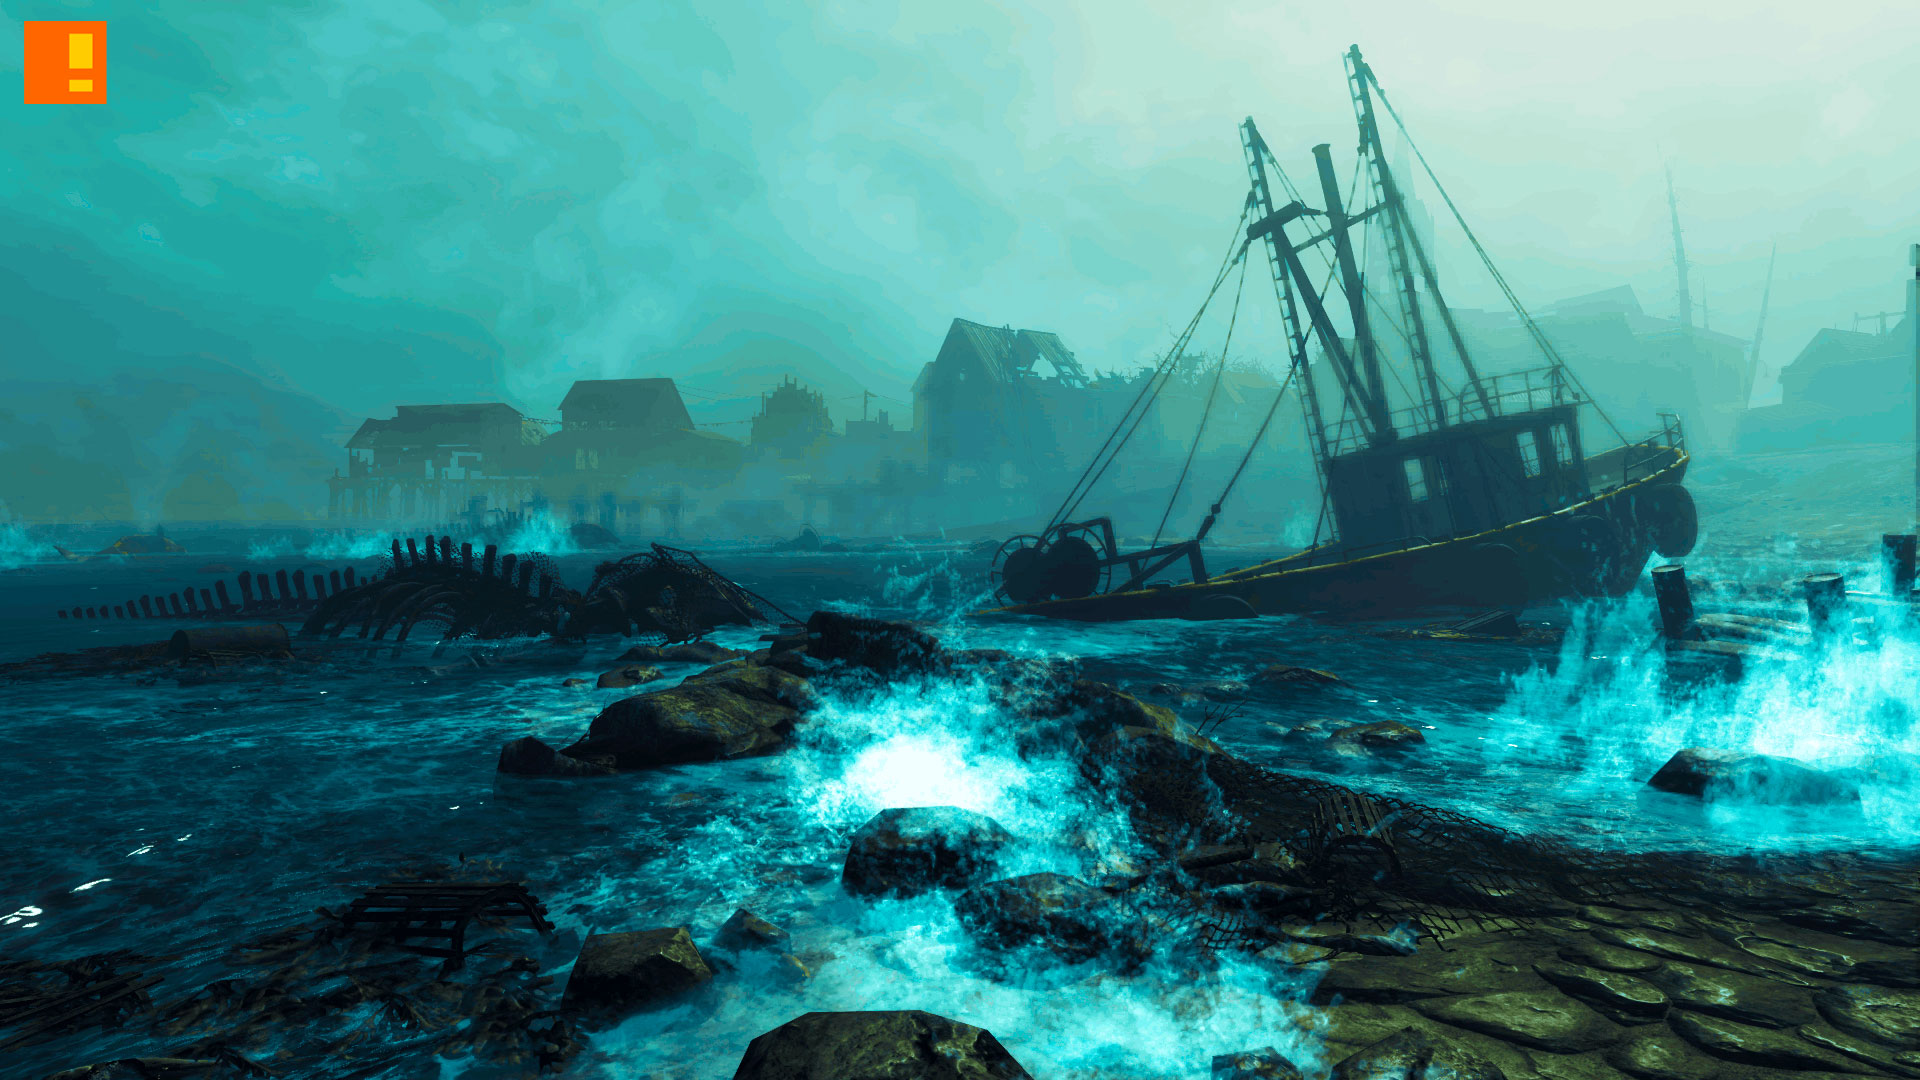 fallout 4 far harbor. bethesda. the action pixel. @theactionpixel